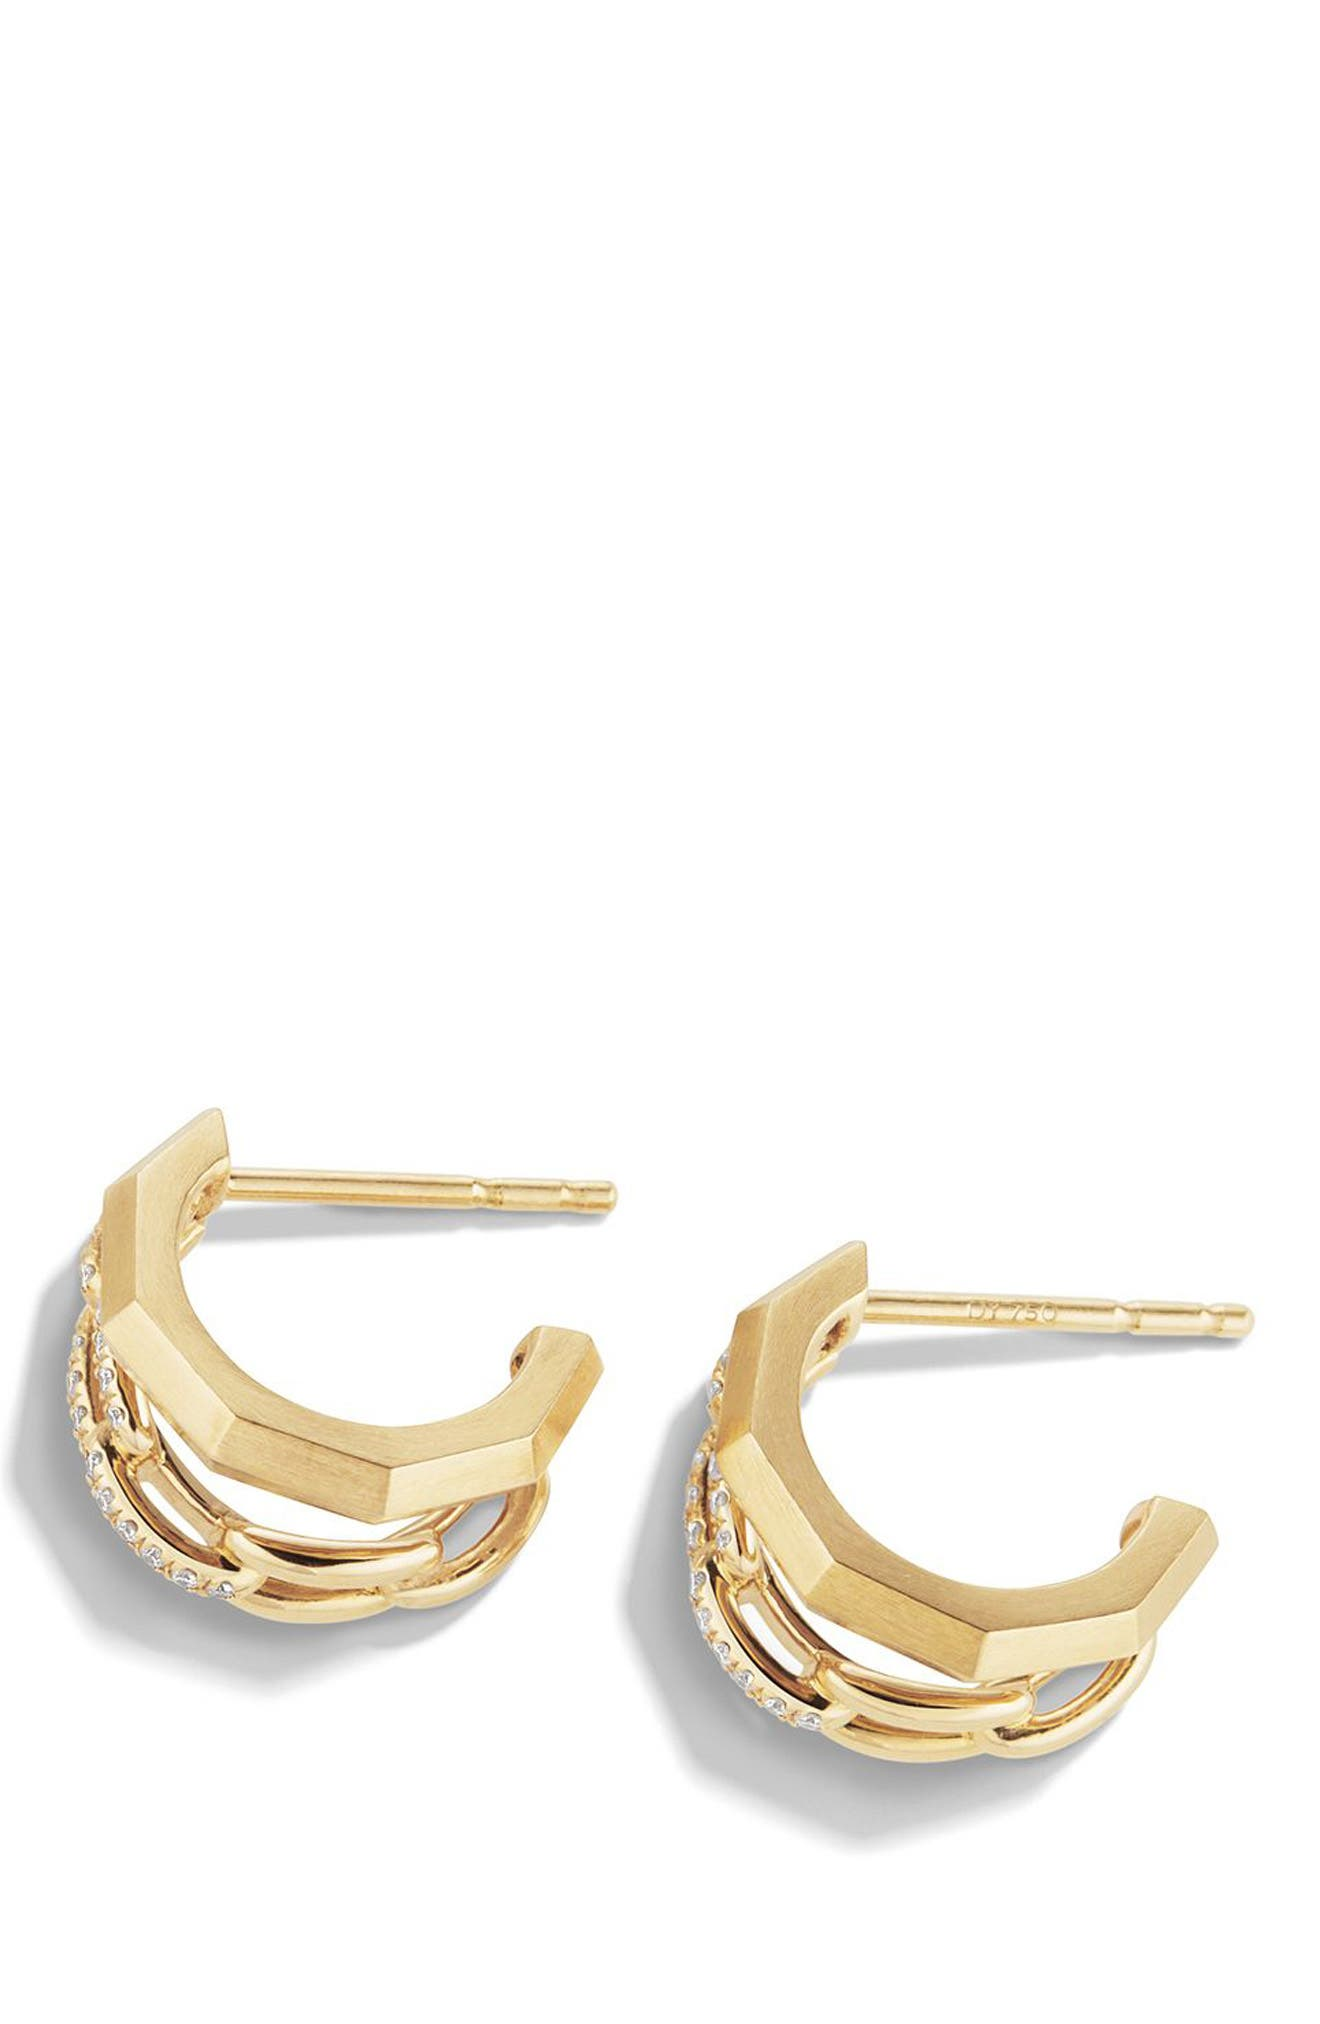 Stax Double Hoop Earrings with Diamonds,                             Alternate thumbnail 2, color,                             YELLOW GOLD